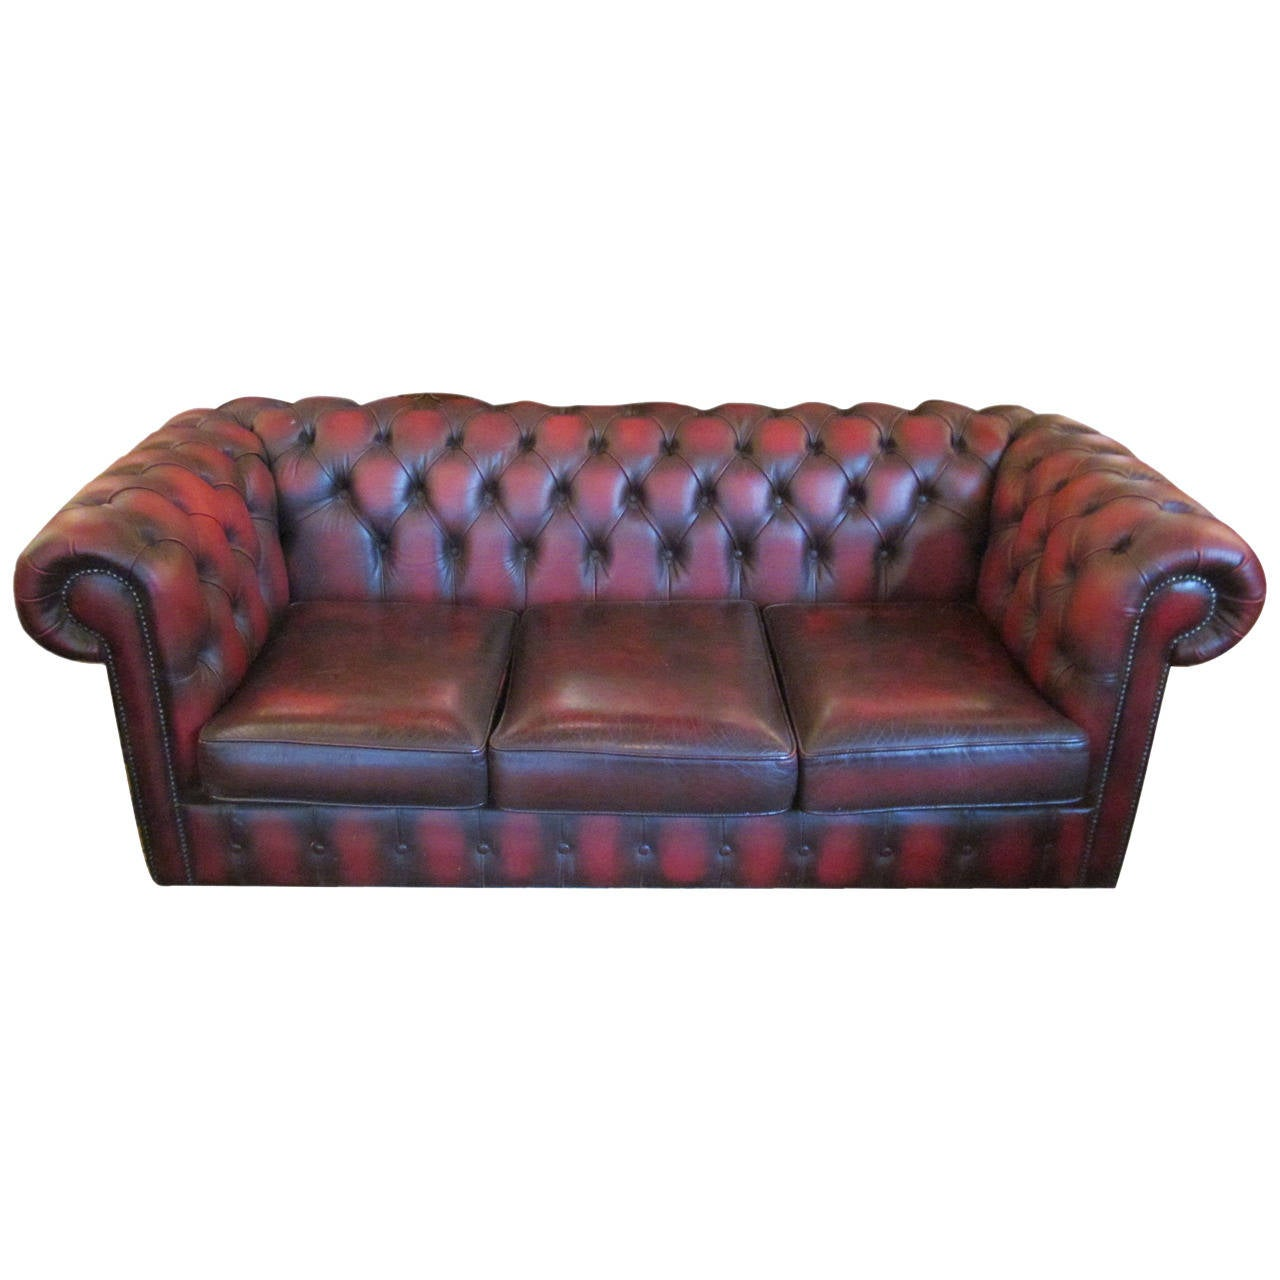 Vintage English Leather Chesterfield Sofa At 1stdibs